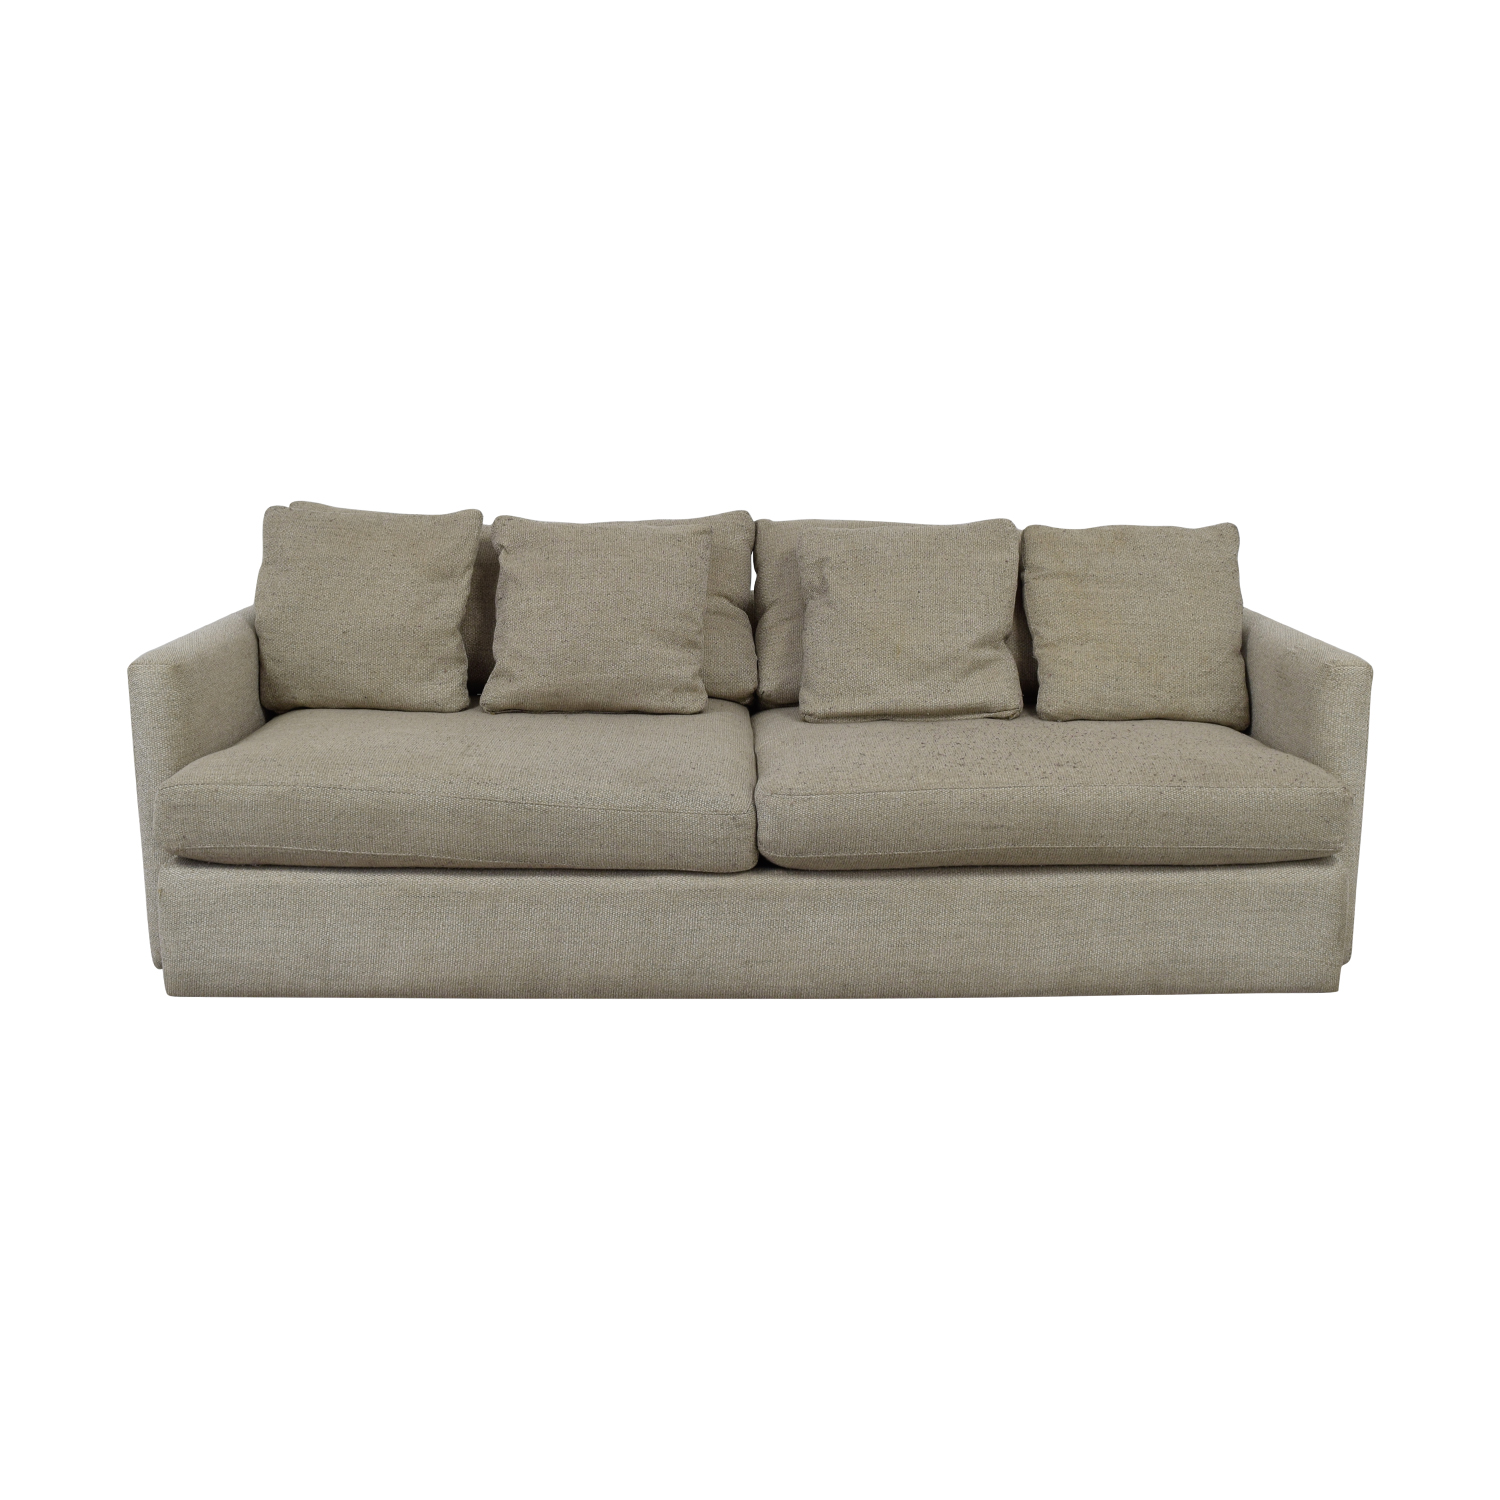 Crate & Barrel Crate & Barrel Cream Two-Cushion Sofa nj